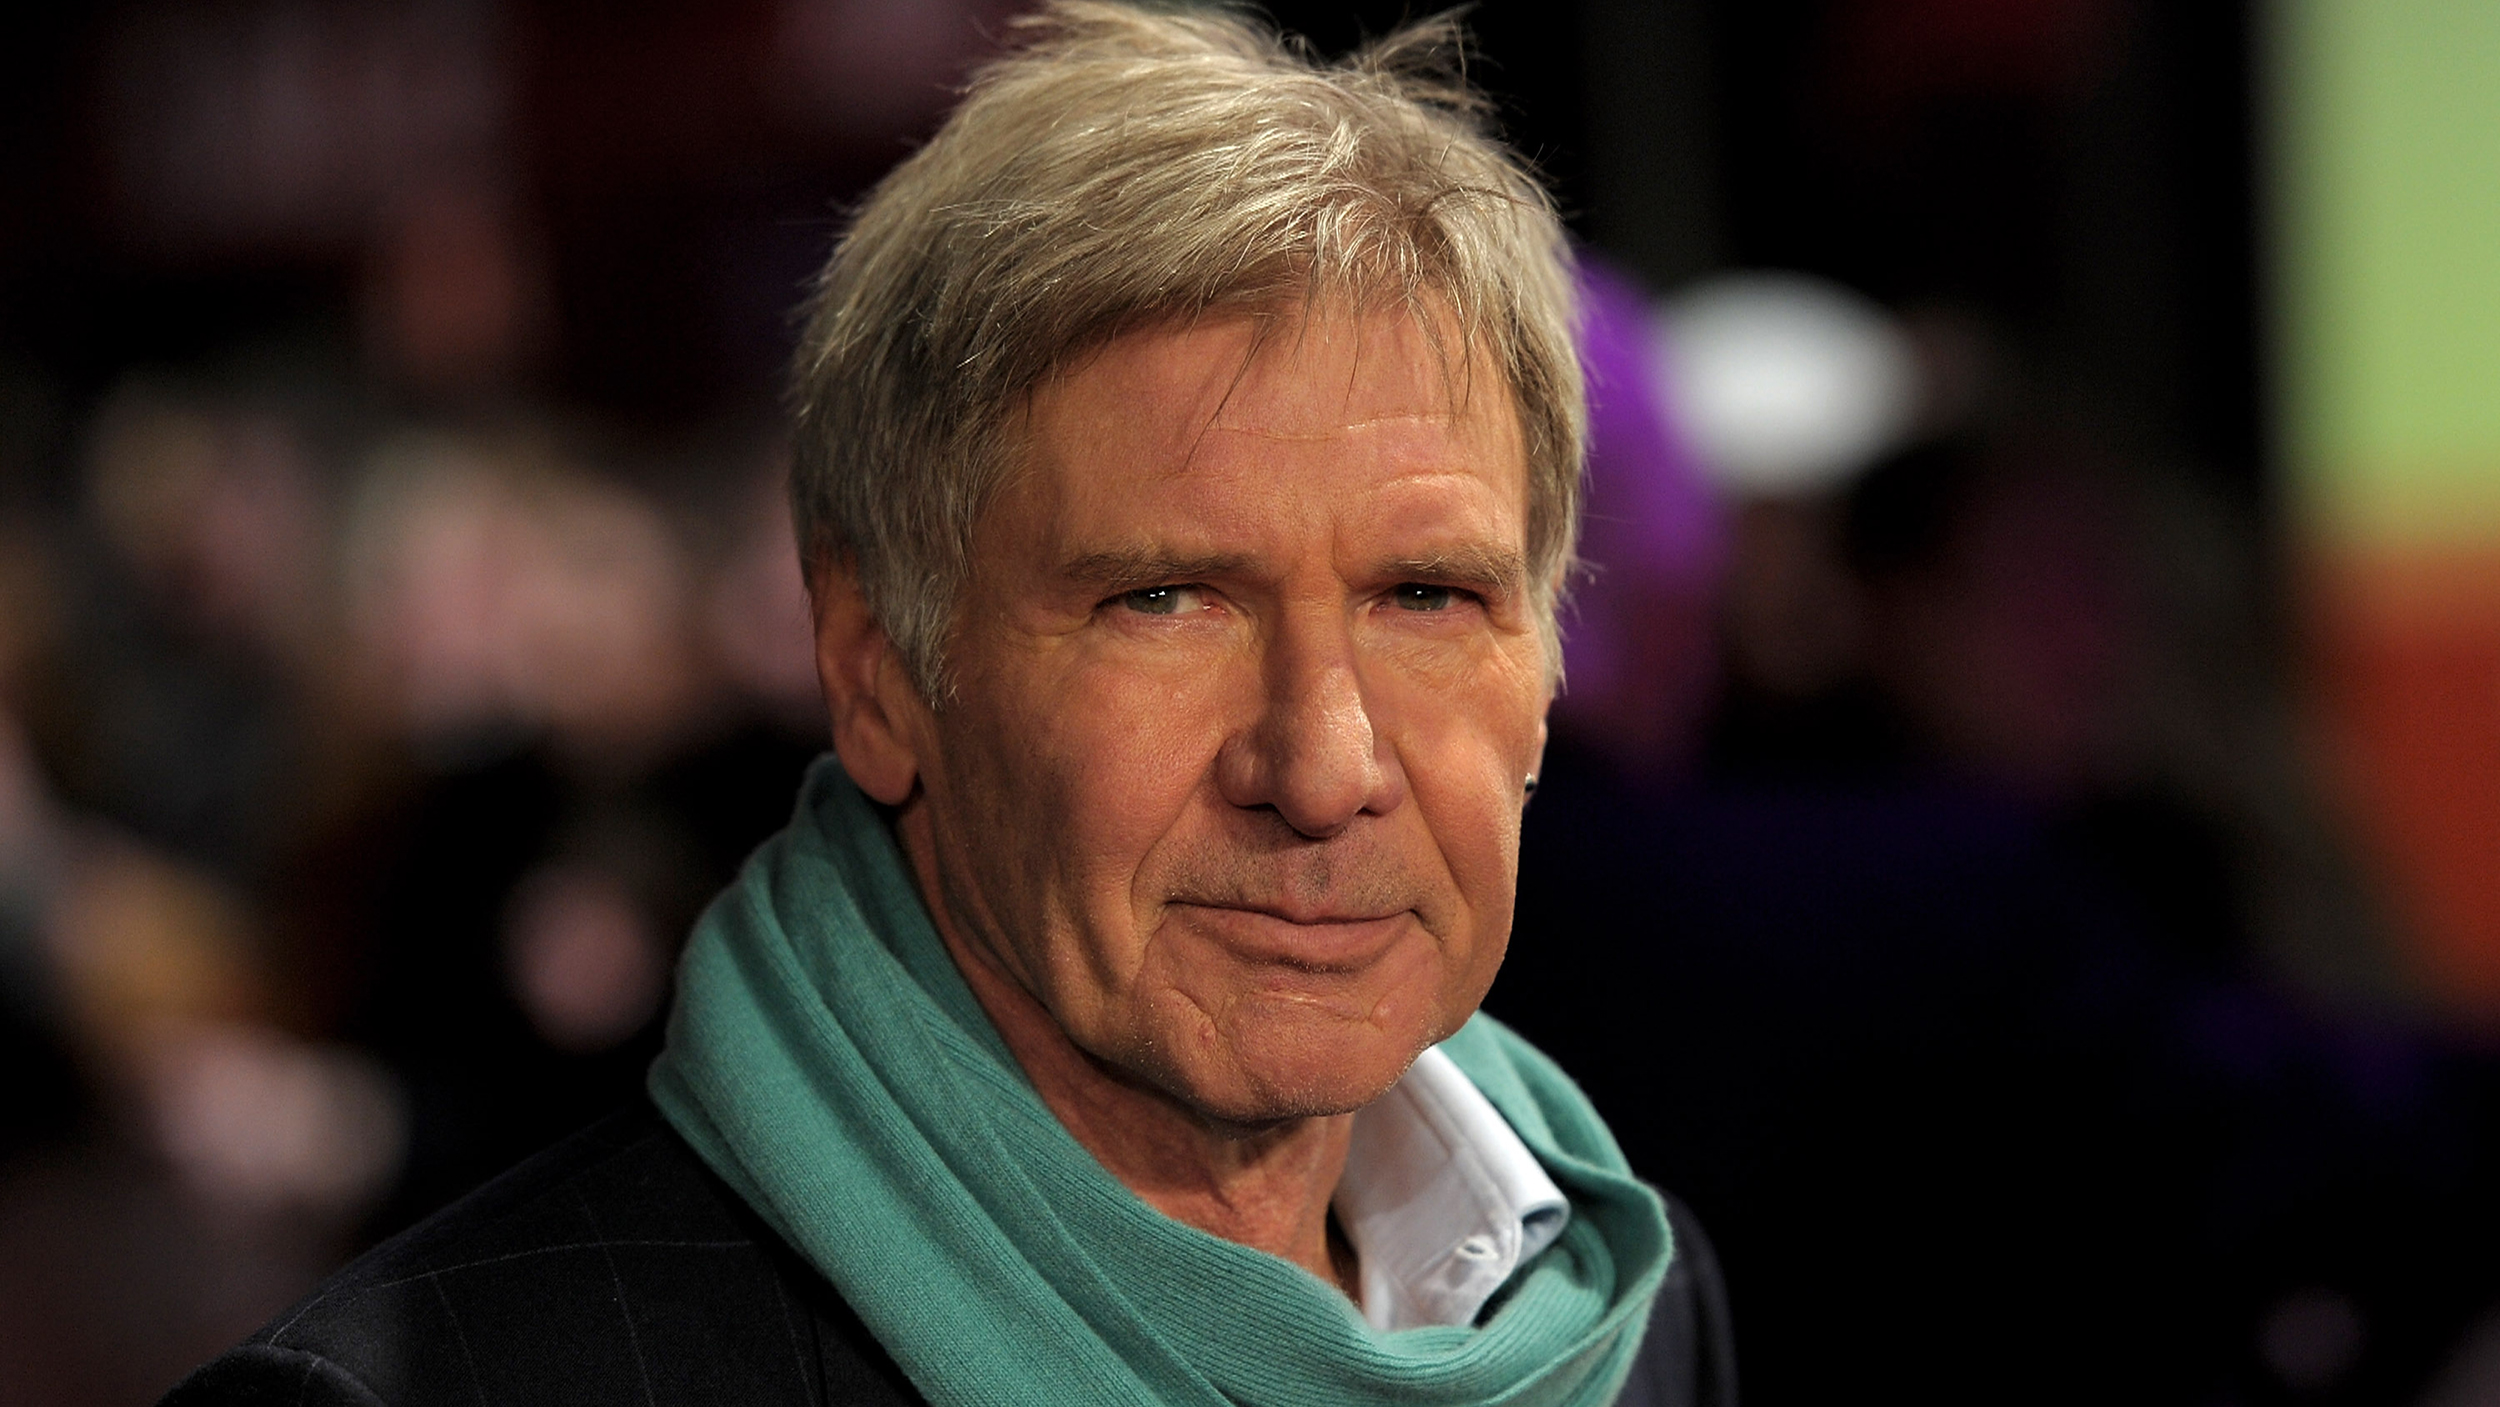 harrison-ford-today-tease-1-151030_01f98ff679f525cfa0c75045fbf4b285